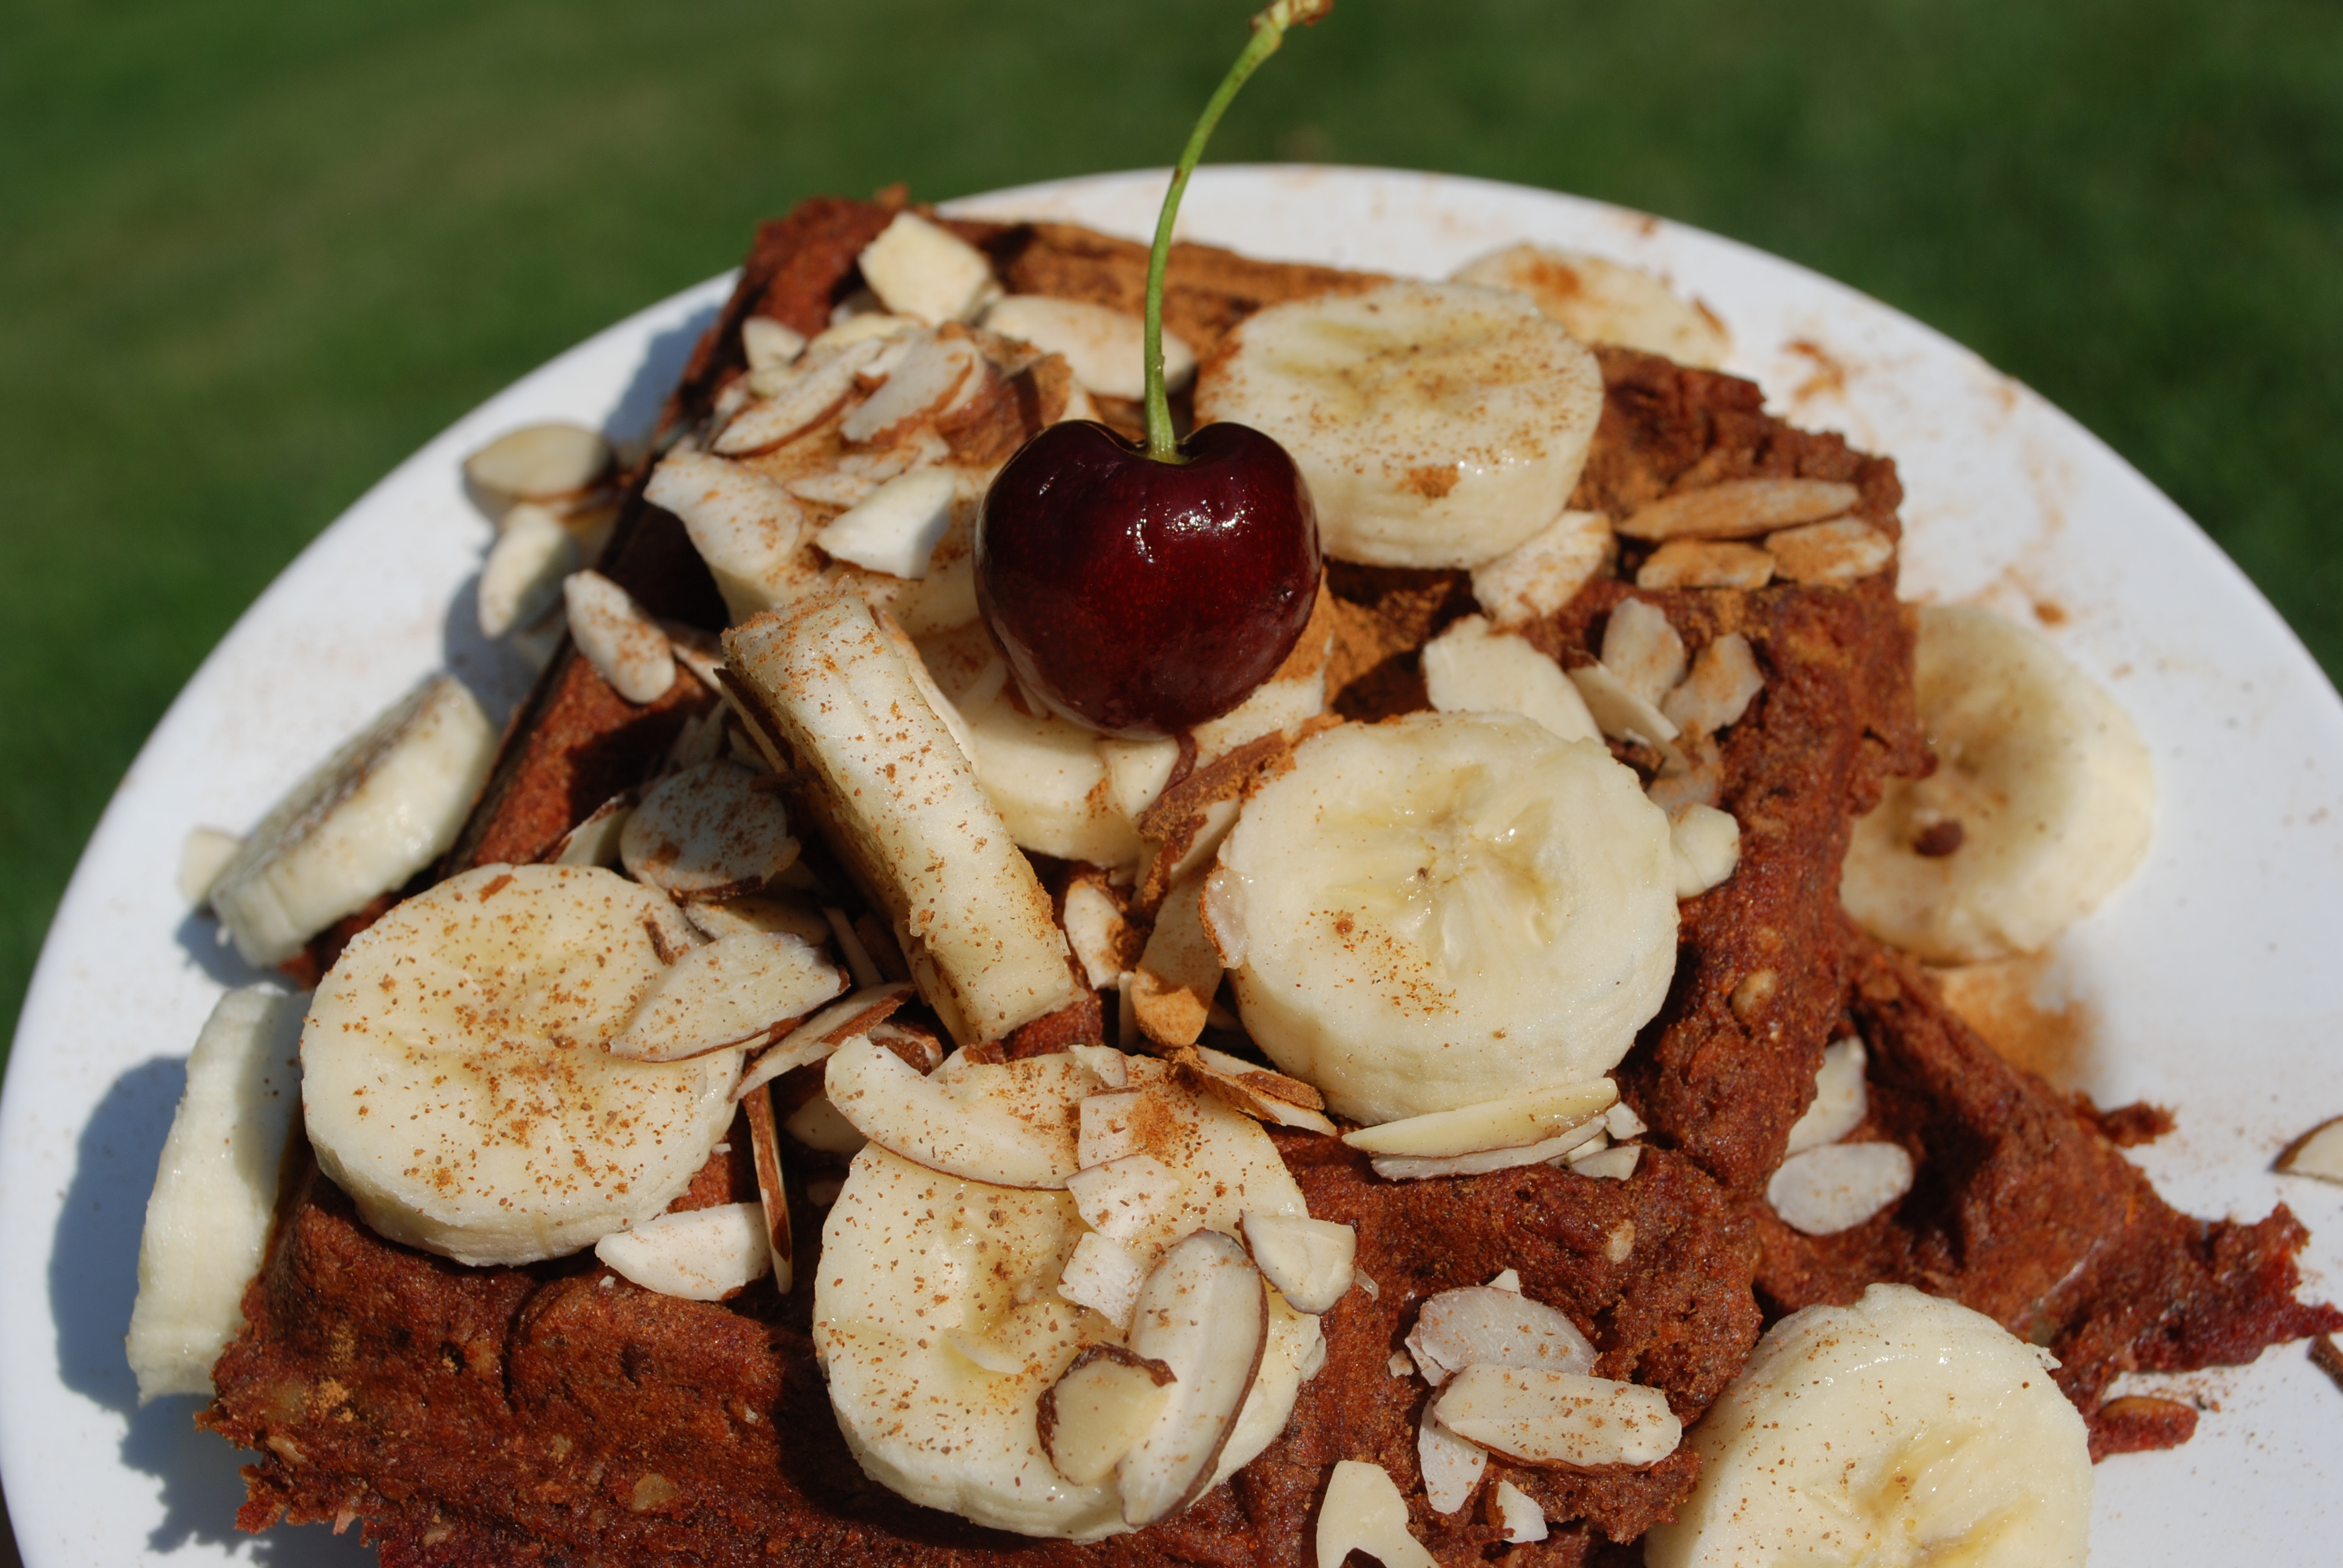 Nutrient-Dense waffles topped with sliced bananas, shredded almonds, cinnamon, and a cherry on top!